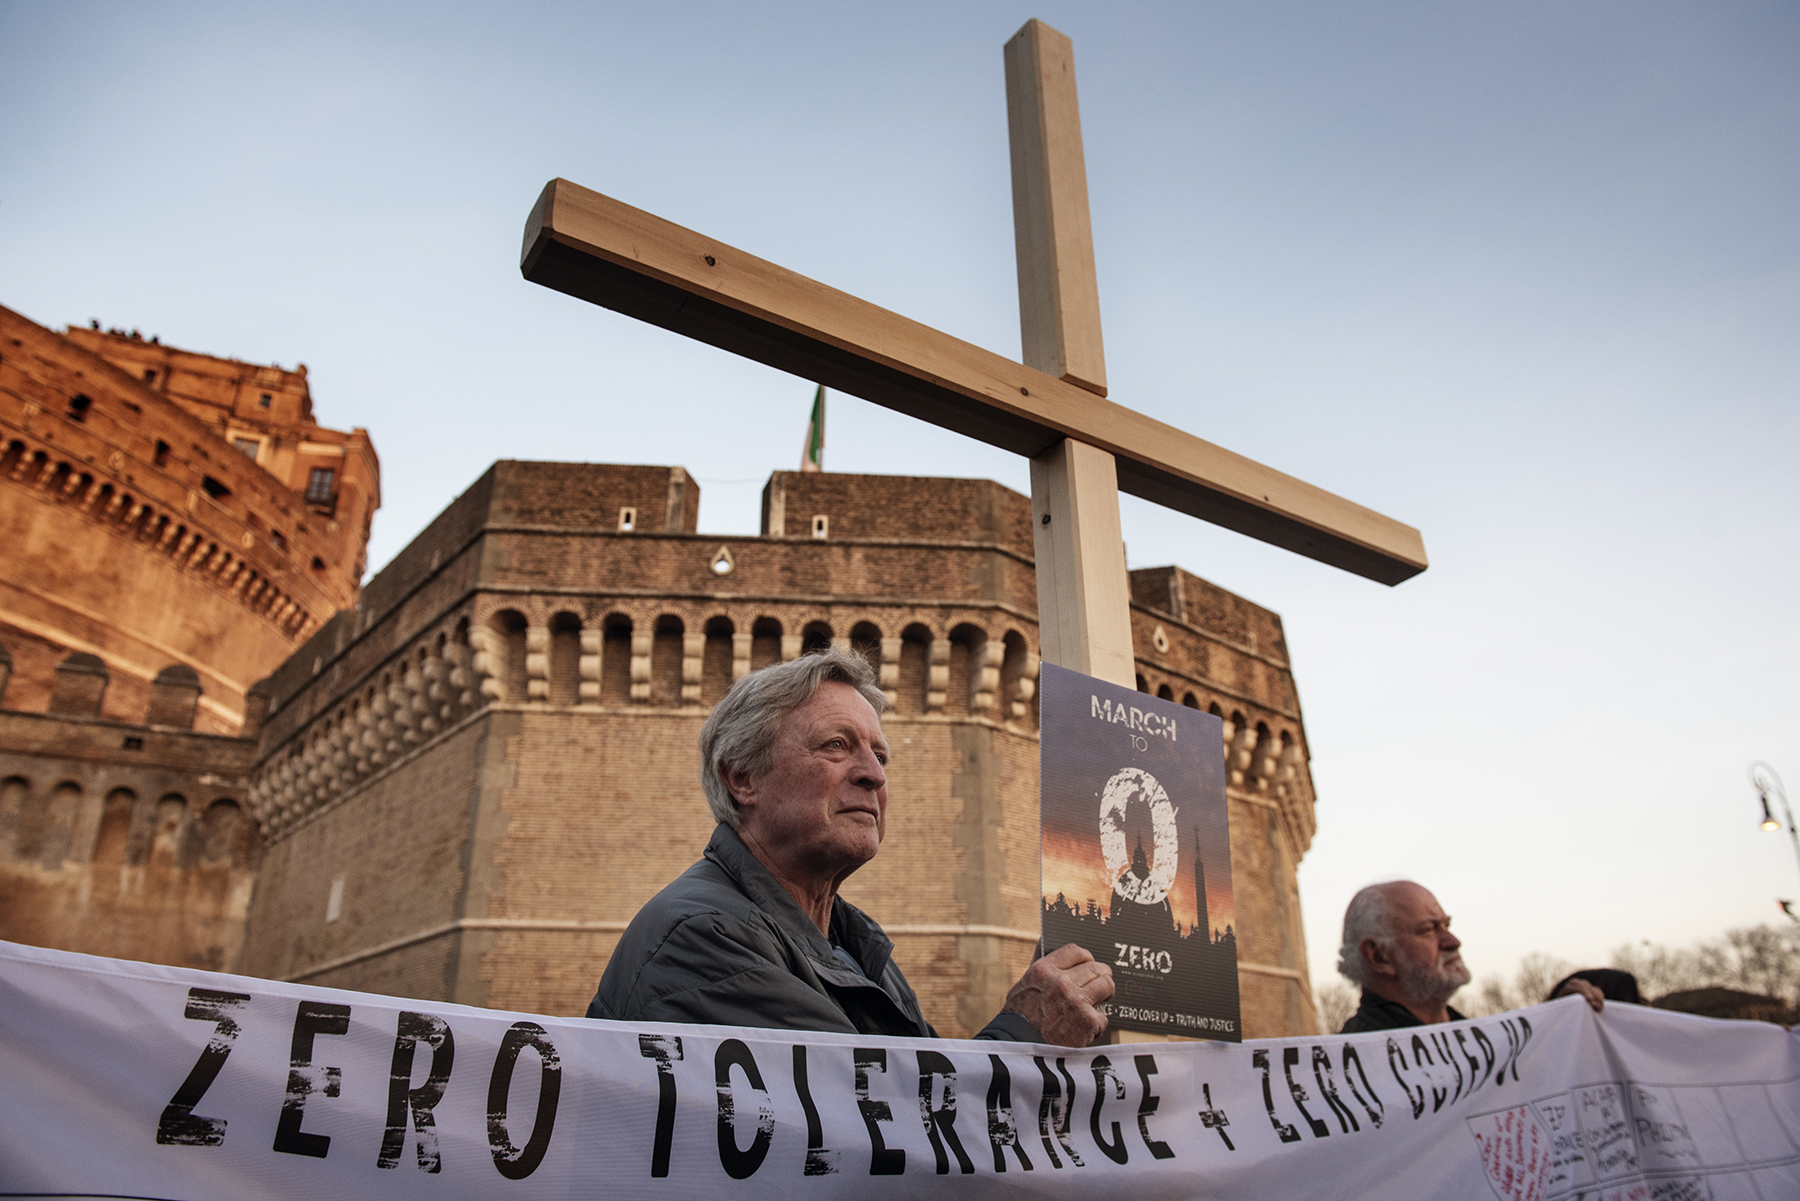 Members of Ending Clergy Abuse (ECA), an organisation of survivors and activists who are organising in Rome a series of events during the papal summit on the sex abuse crisis within the Catholic Church, take part in a protest gathering on February 21, 2019 by the Castel Sant'Angelo in Rome, Italy. Pope Francis opened a historic summit meeting at the Vatican on Thursday devoted to clerical child sex abuse, gathering 190 leaders of the Roman Catholic Church tackling the wave of abuse scandals assailing the Vatican.